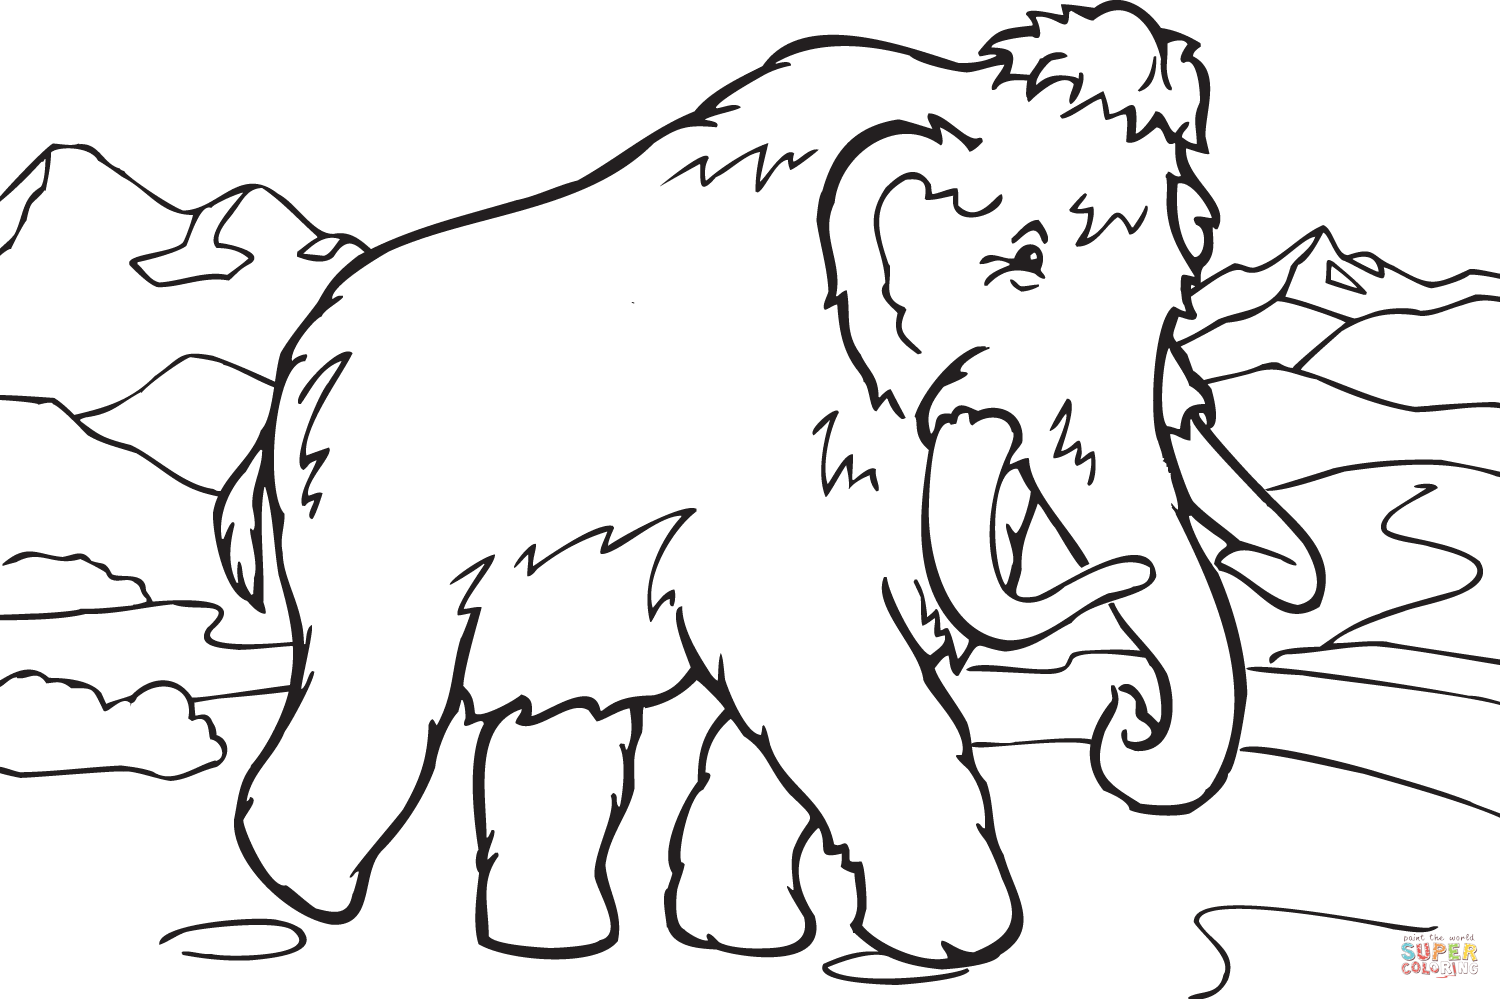 1500x999 Walking Mammoth Coloring Page Free Printable Coloring Pages